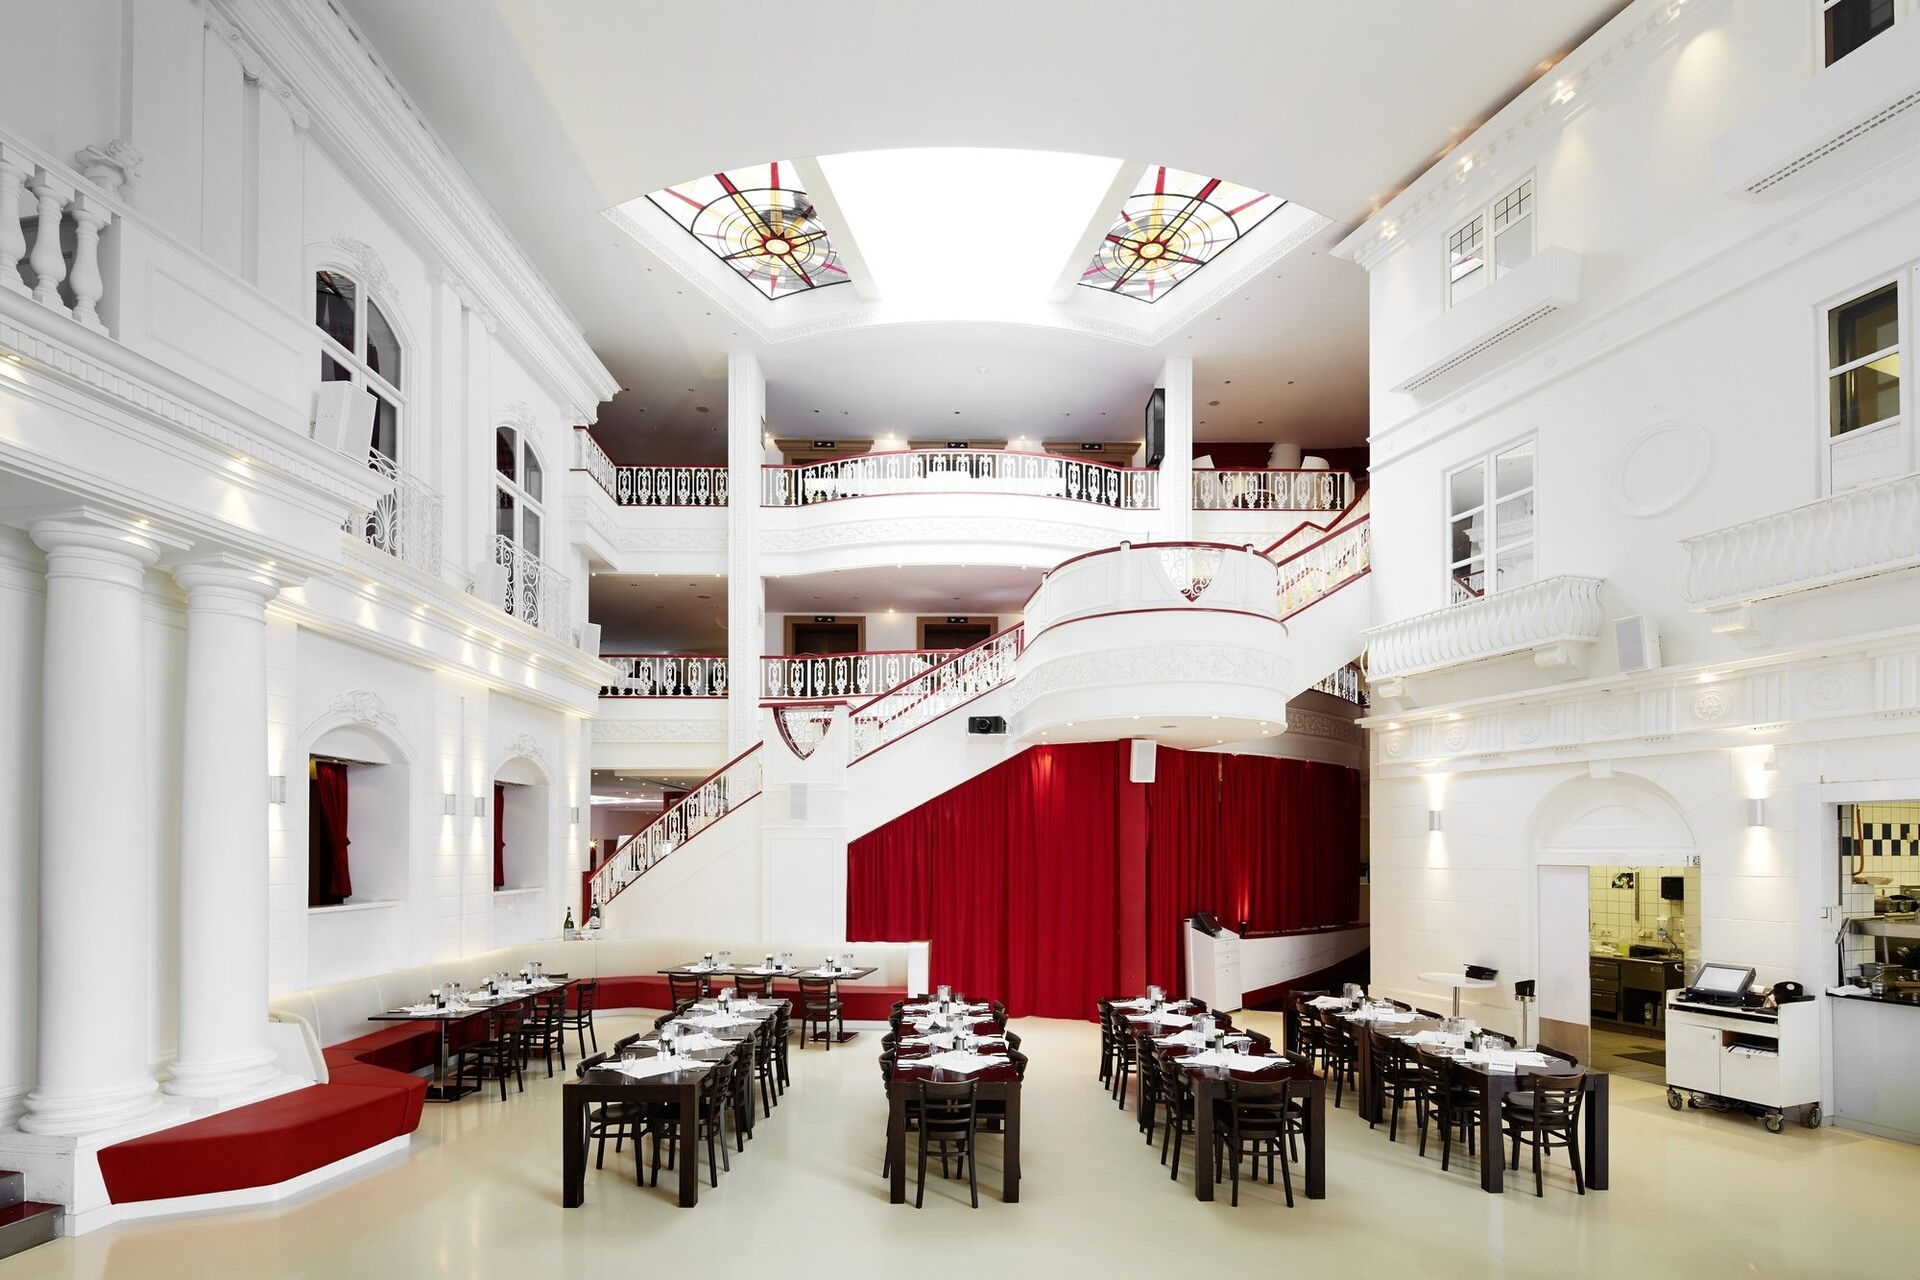 A large white lobby that has tables with chairs lining the floor and a staircase in the background.